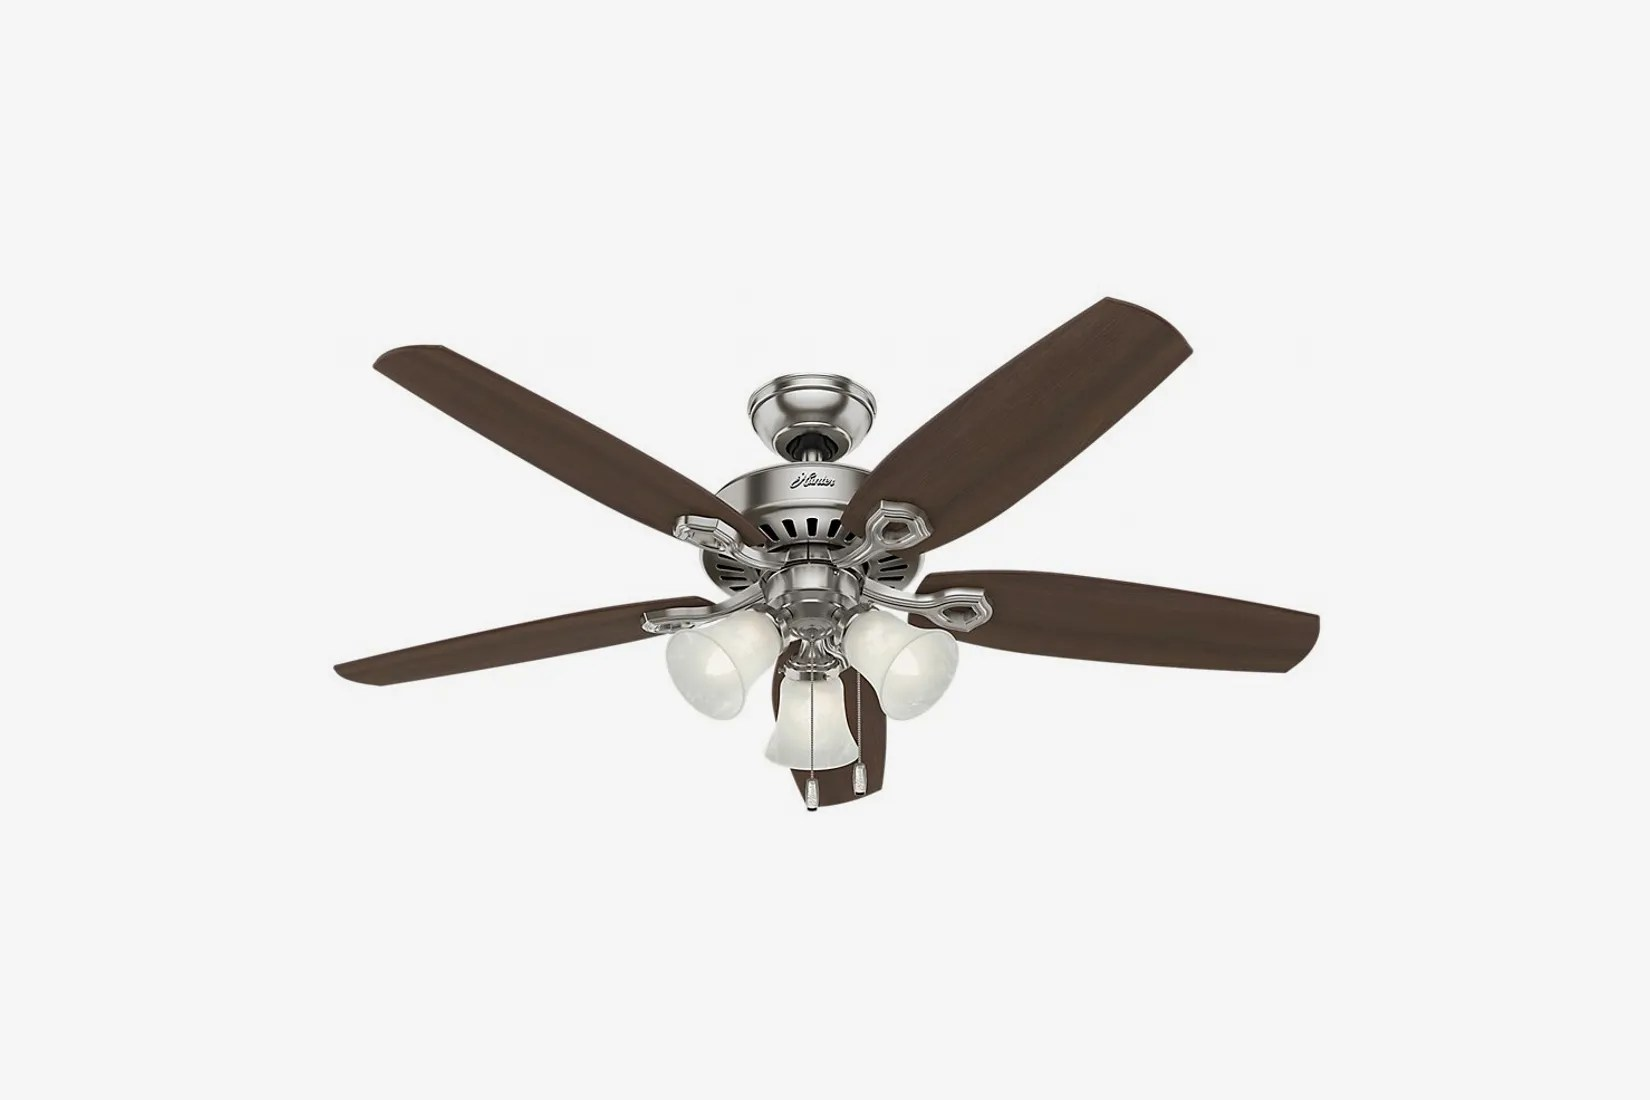 Small Ceiling Fans For Sale 9 Best Ceiling Fans To Buy 2019